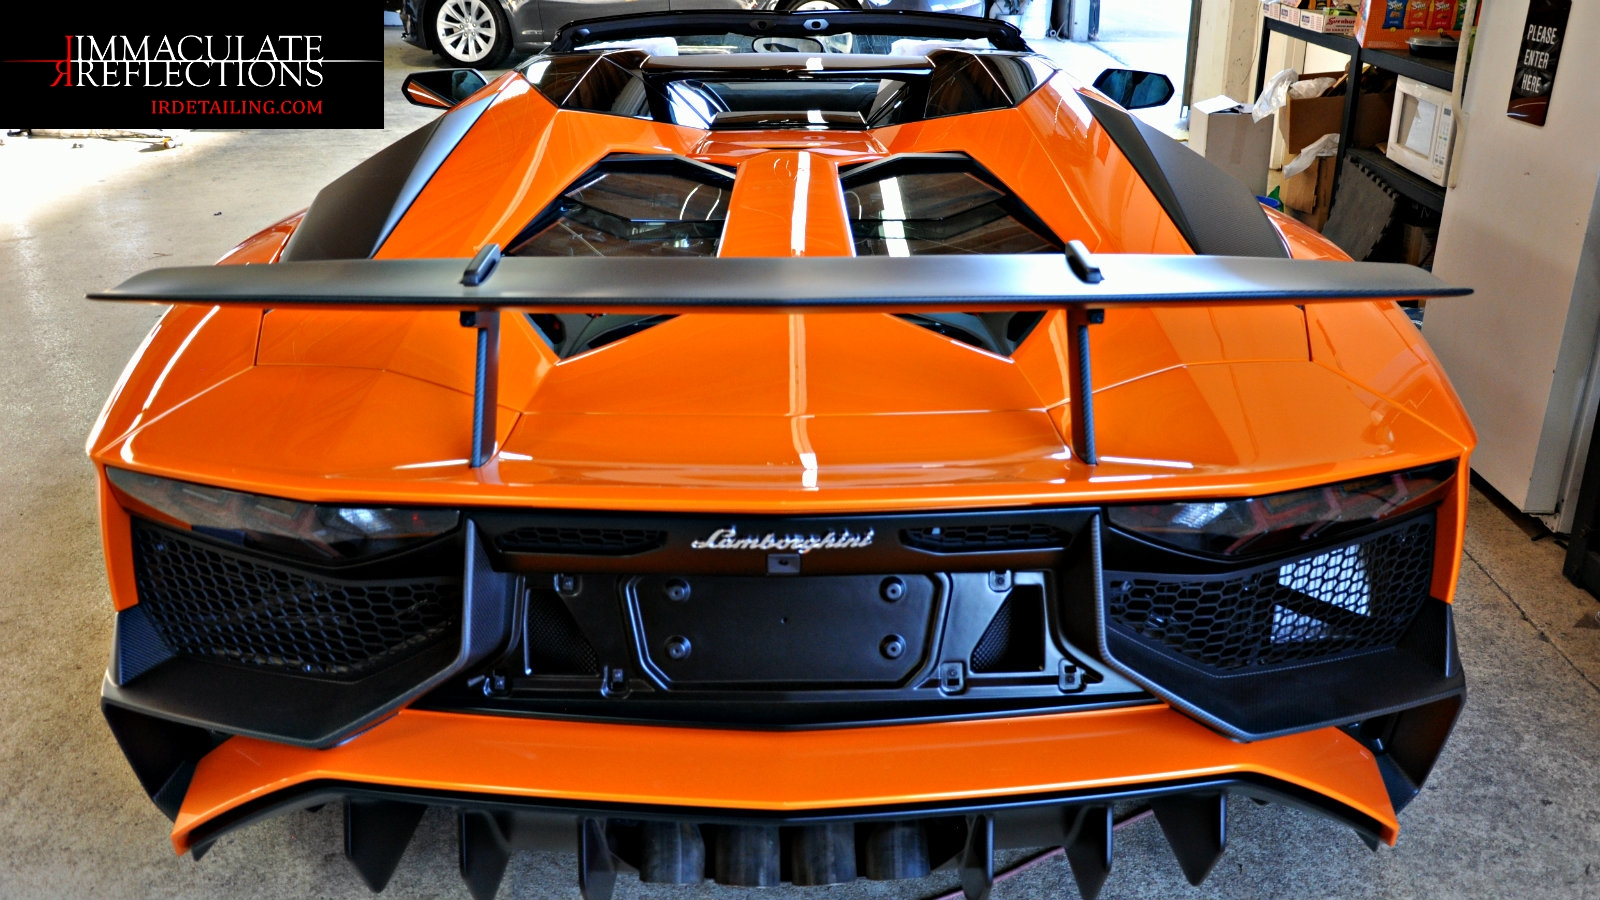 This Lamborghini Aventador SV has super high gloss from a Paint Correction Detail by Immaculate Reflections, San Francisco Bay Ca.